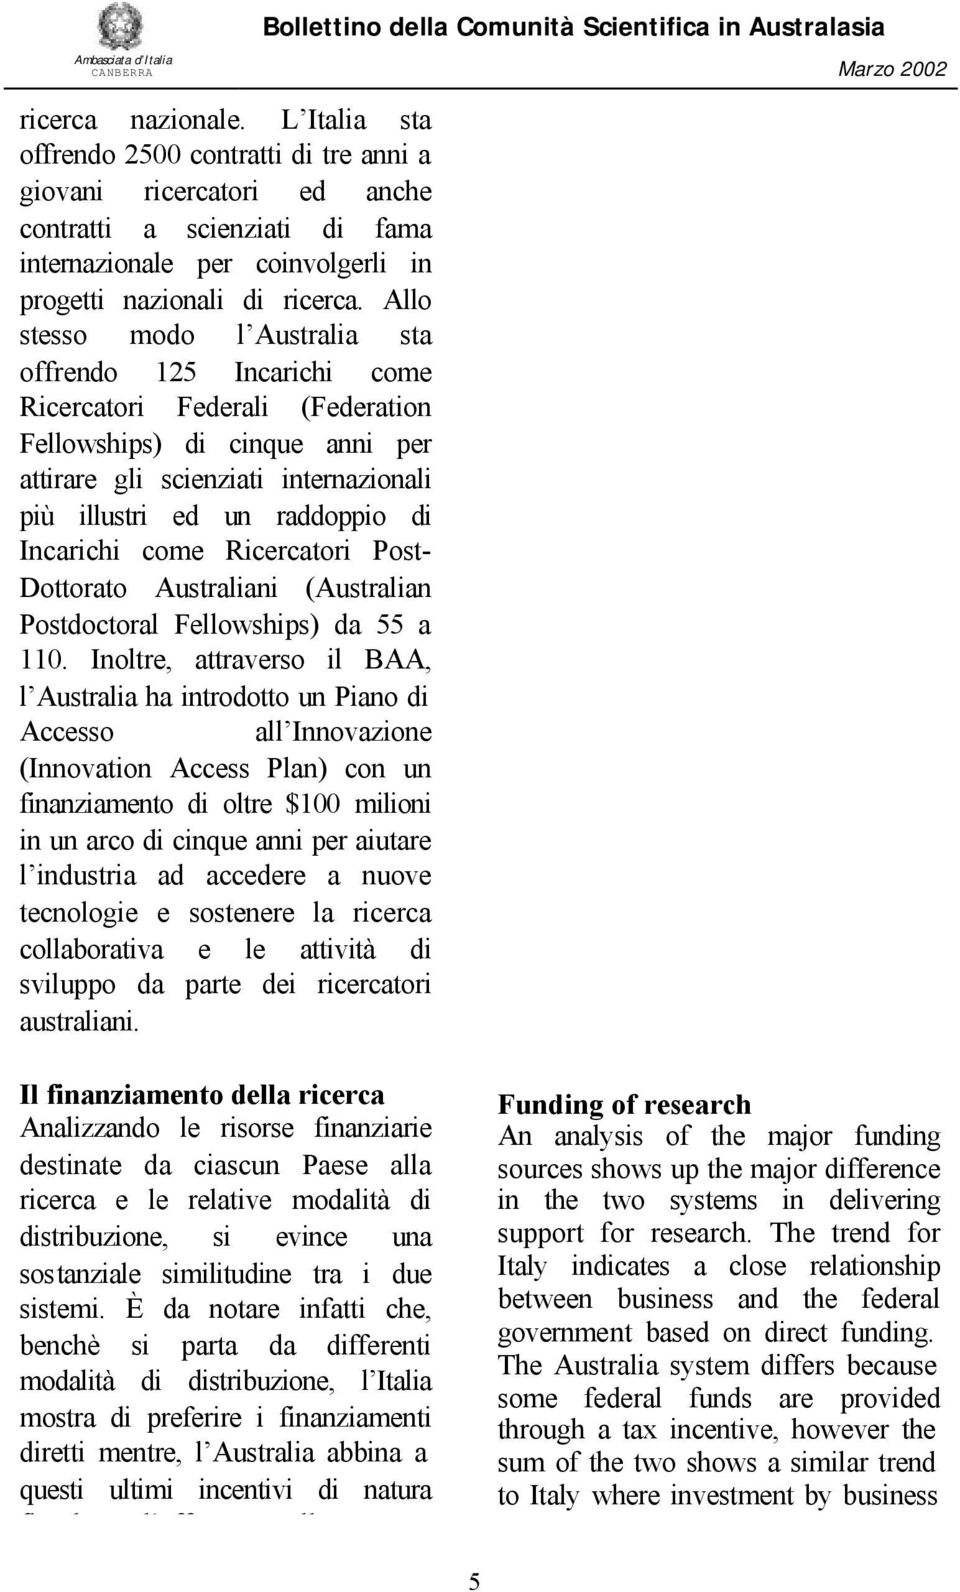 Incarichi come Ricercatori Post- Dottorato Australiani (Australian Postdoctoral Fellowships) da 55 a 110.